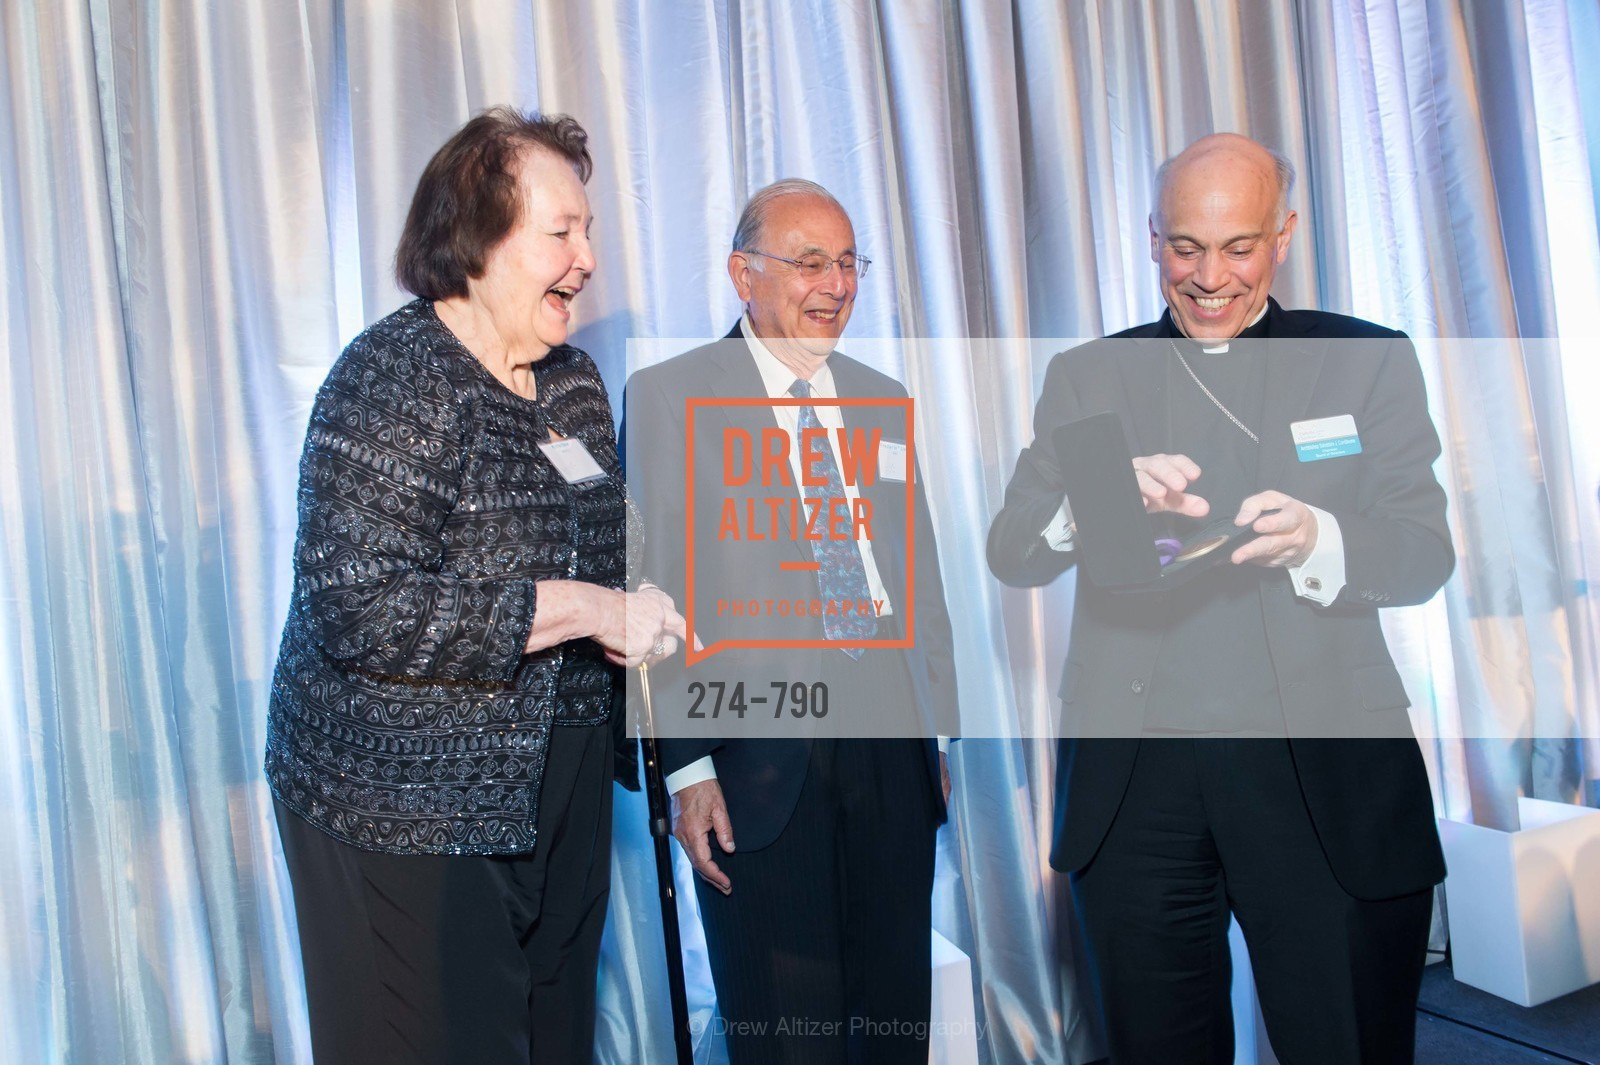 Kristine Silva, Frederick Jim Silva, Archbishop Salvatore Cordeleone, Post War and Contemporary Preview at HEDGE GALLERY, US, April 15th, 2015,Drew Altizer, Drew Altizer Photography, full-service agency, private events, San Francisco photographer, photographer california